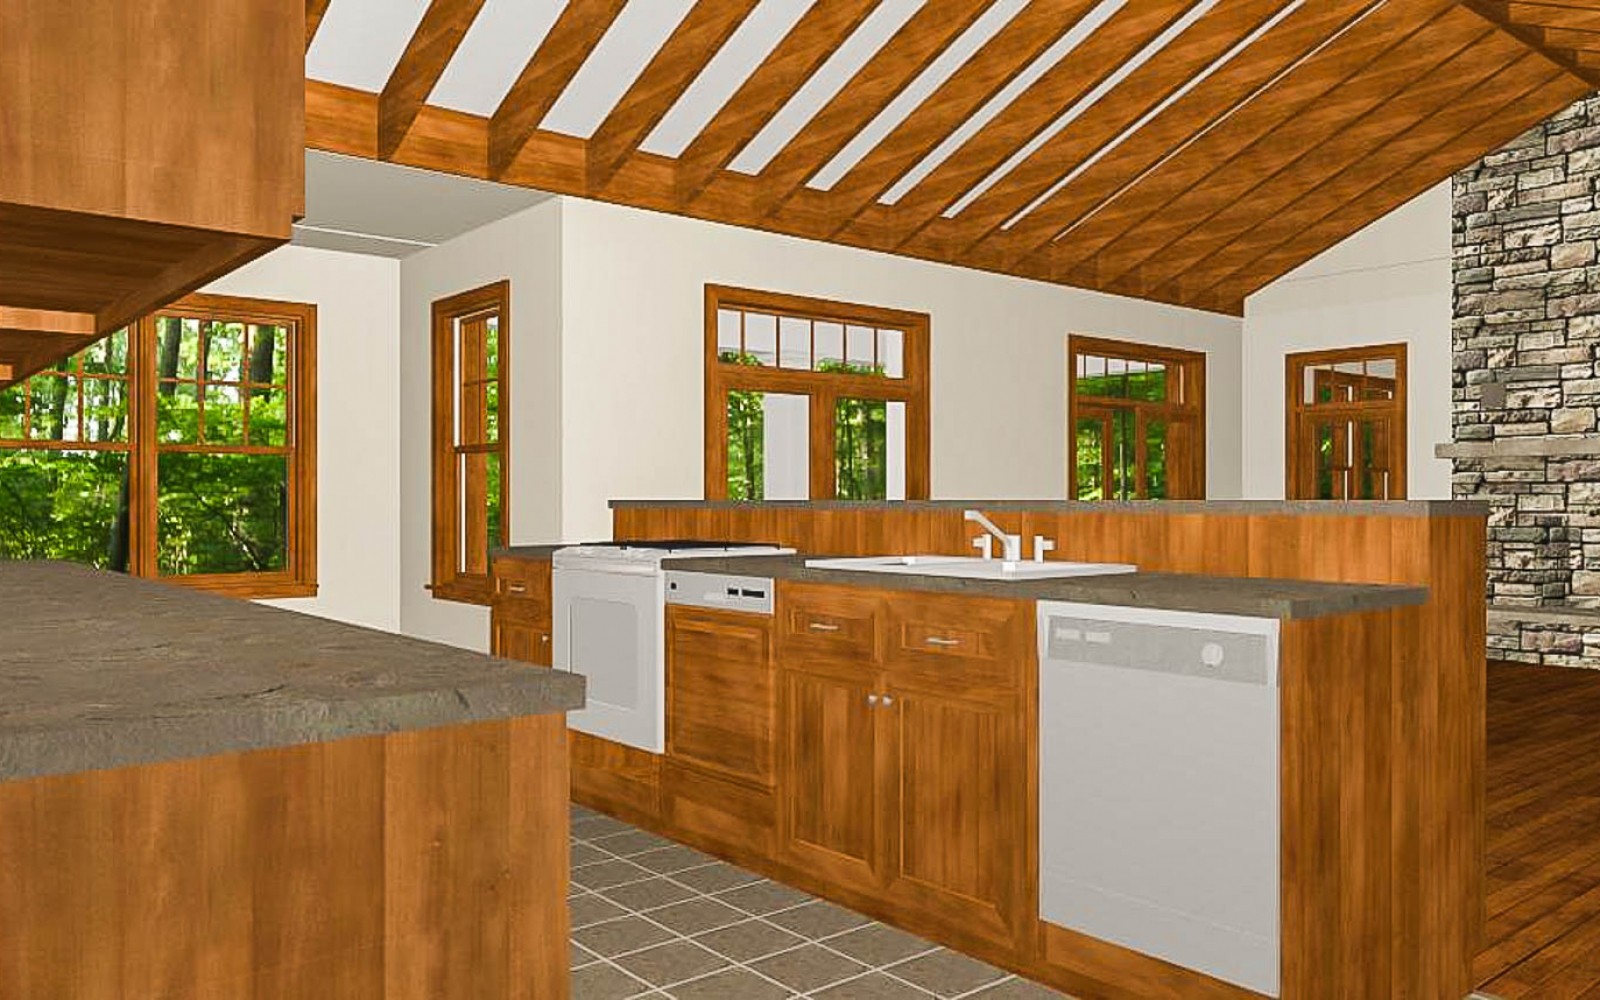 100 shenandoah kitchen cabinets how to clean yellowed hickory kitchen cabinets modern - We collect the top rated kitchen cabinet ...